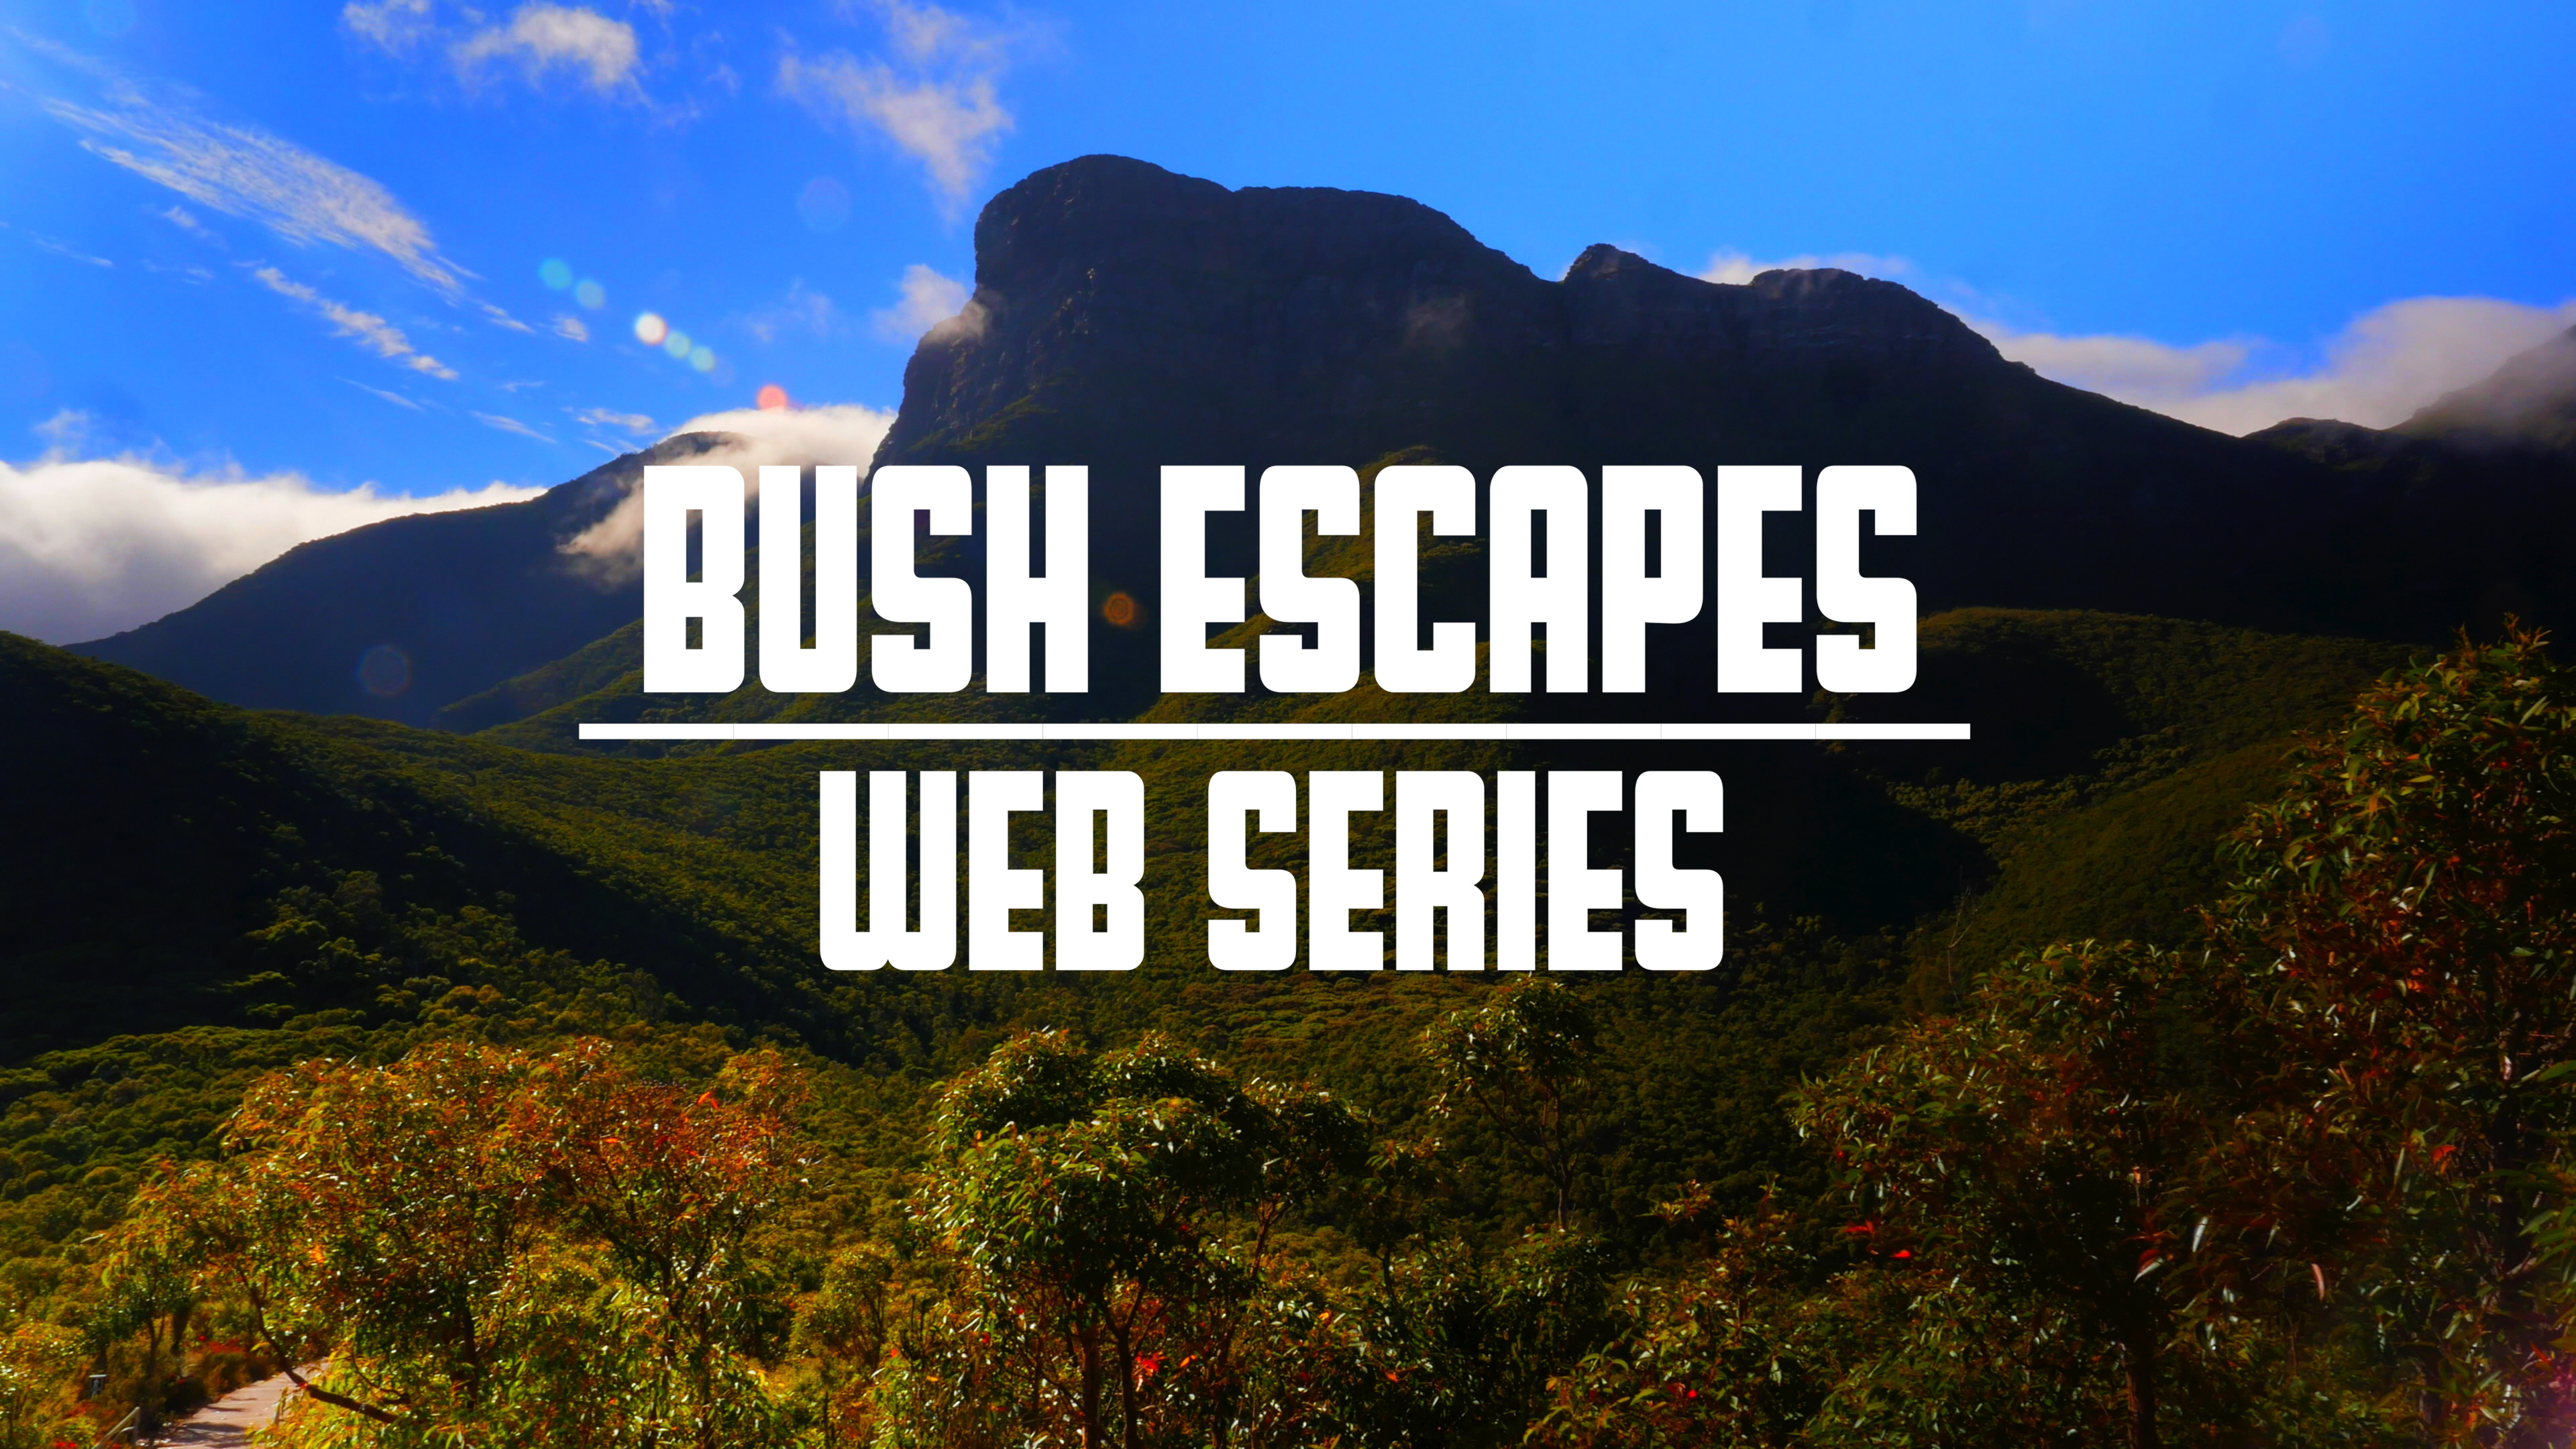 Bush Escapes Web Series